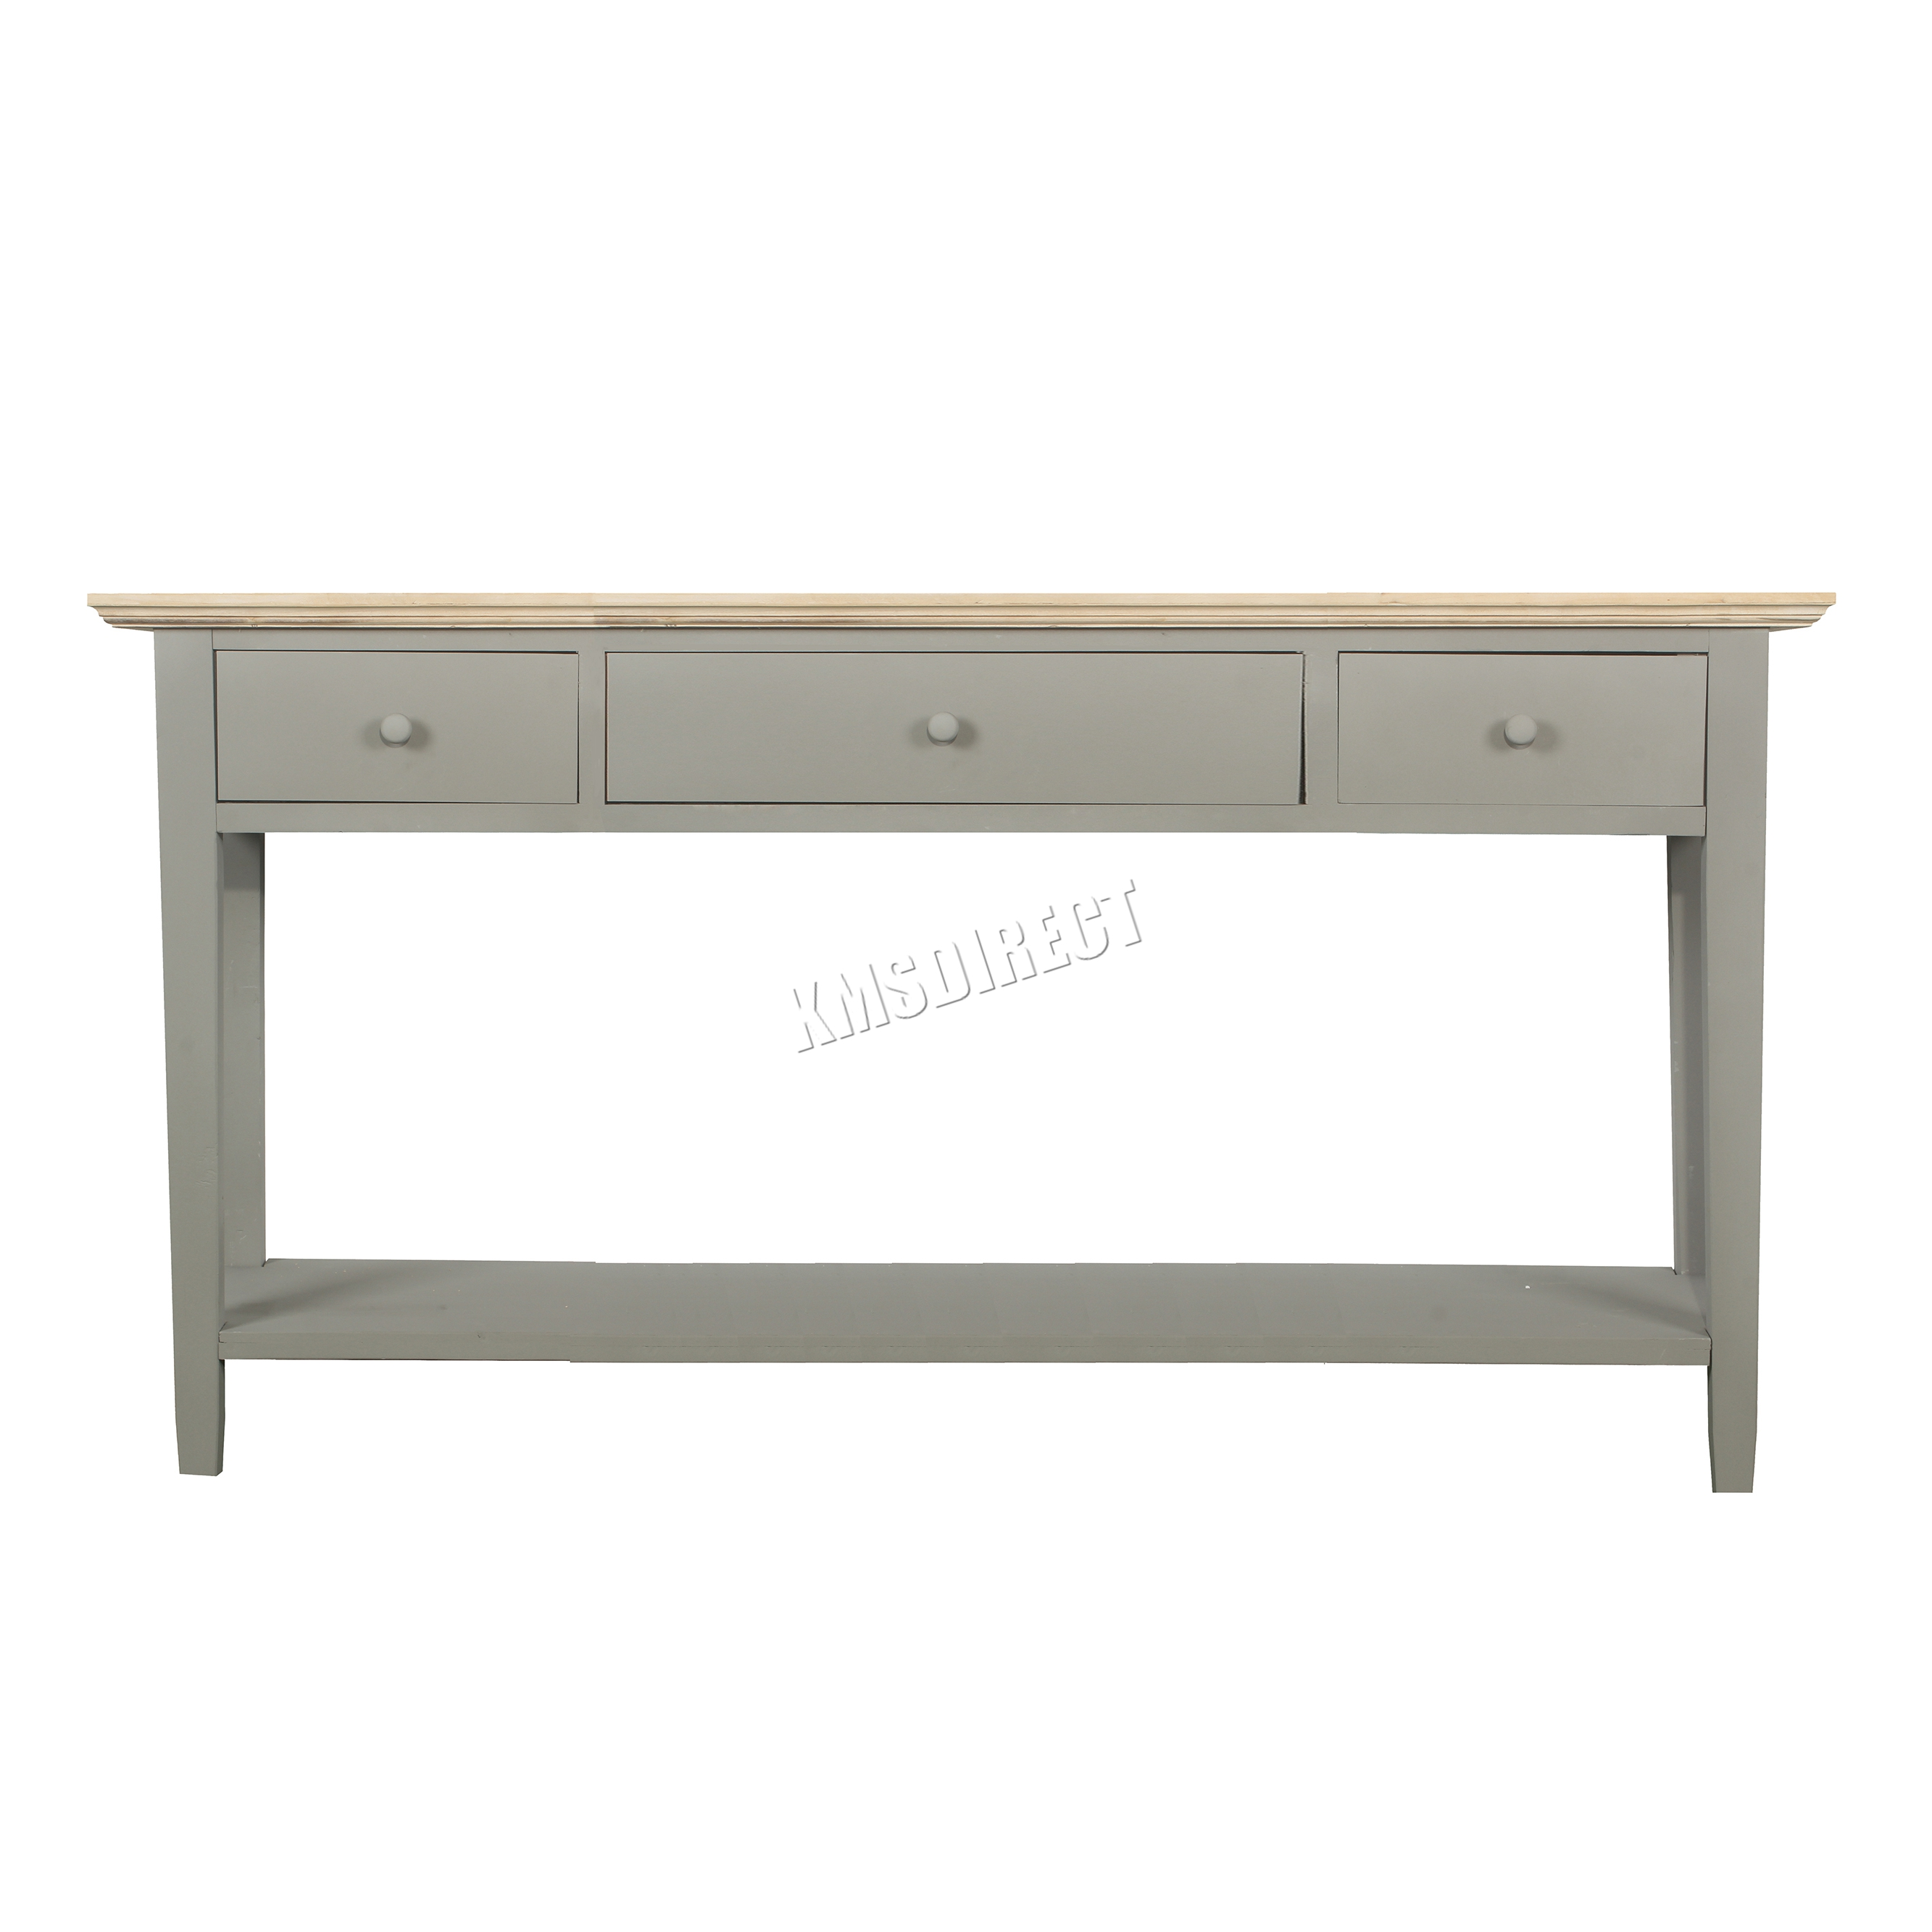 Foxhunter console table 3 drawers wood hallway side for Table th 00 02